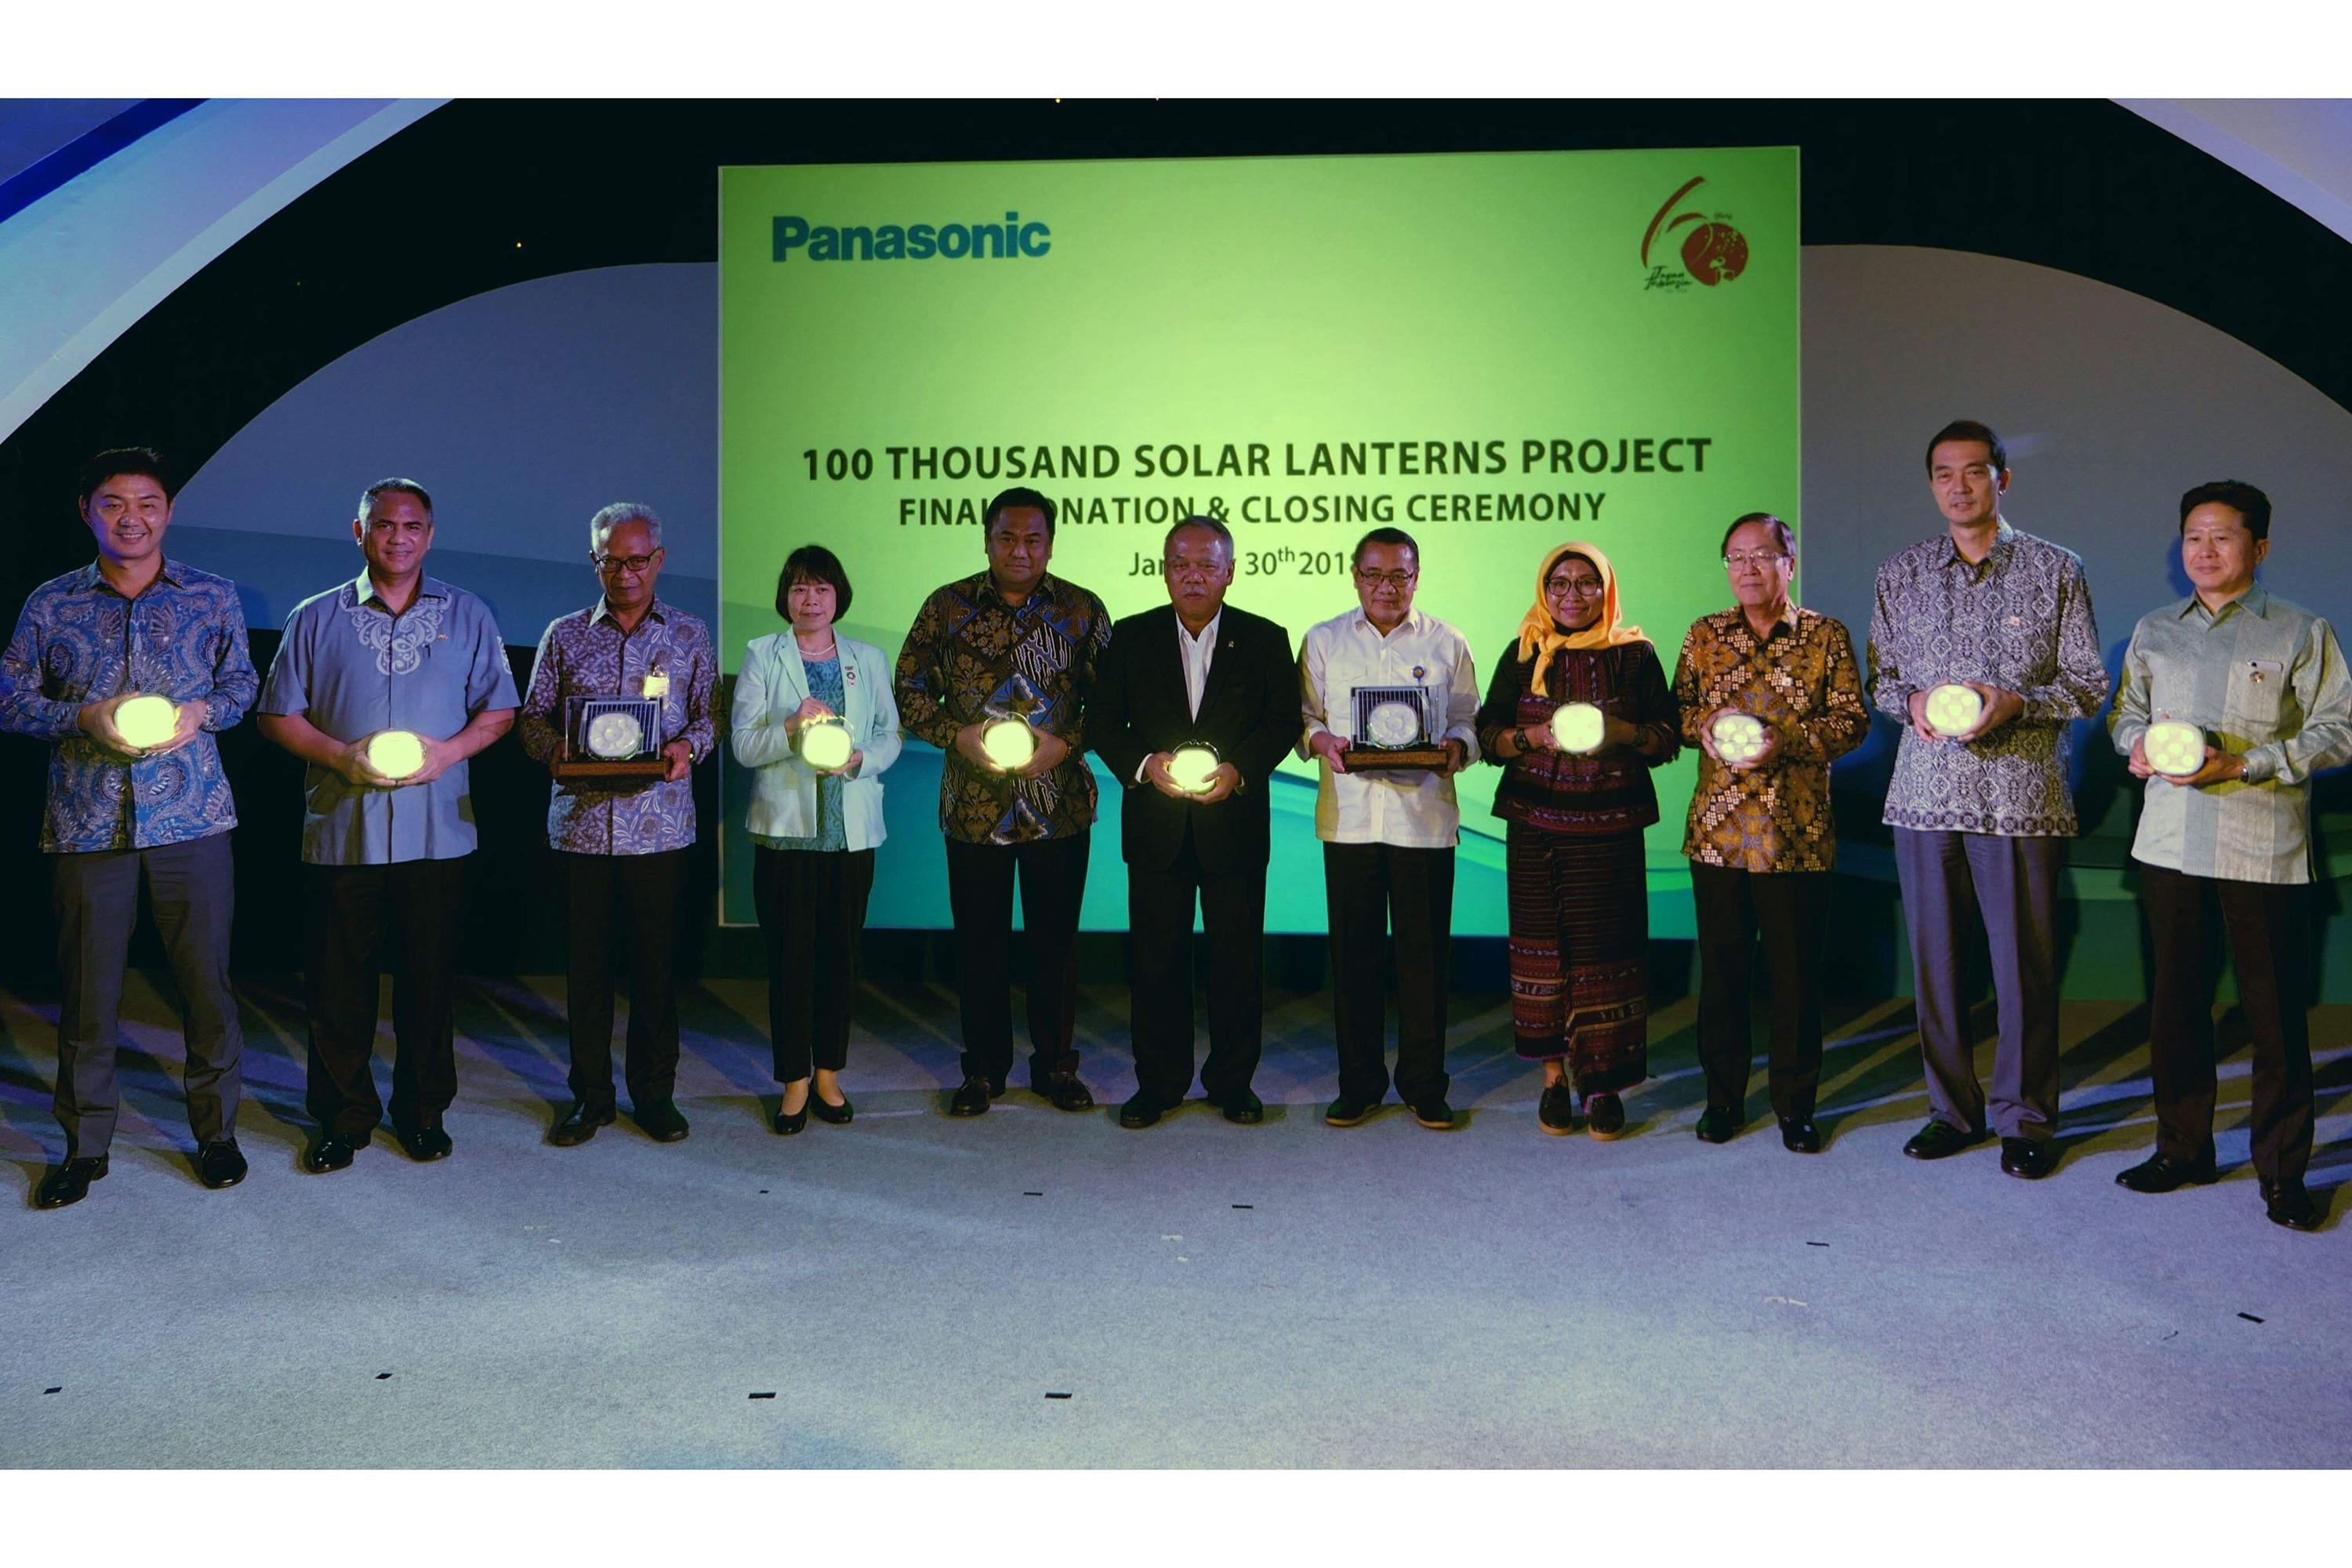 photo: the closing ceremony of panasonic's 100 thousand solar lanterns donation